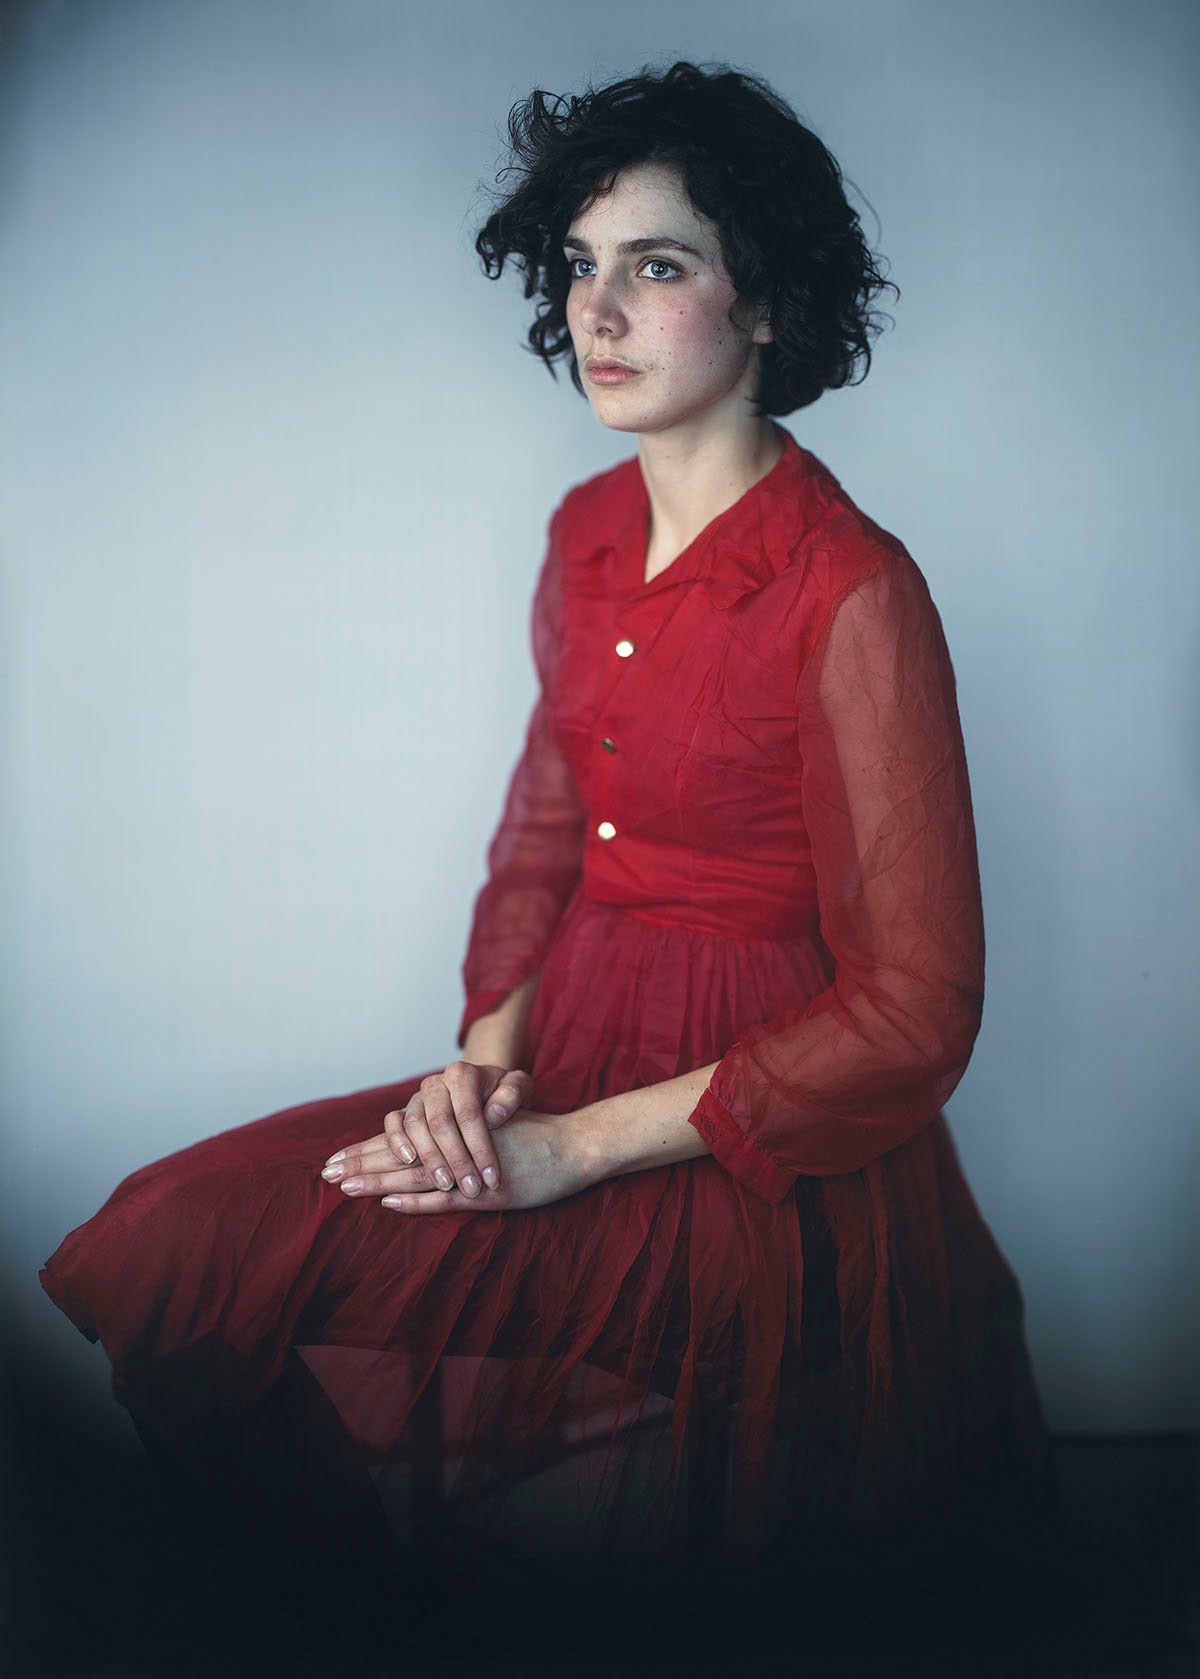 Agnes in Red Dress, 2008.